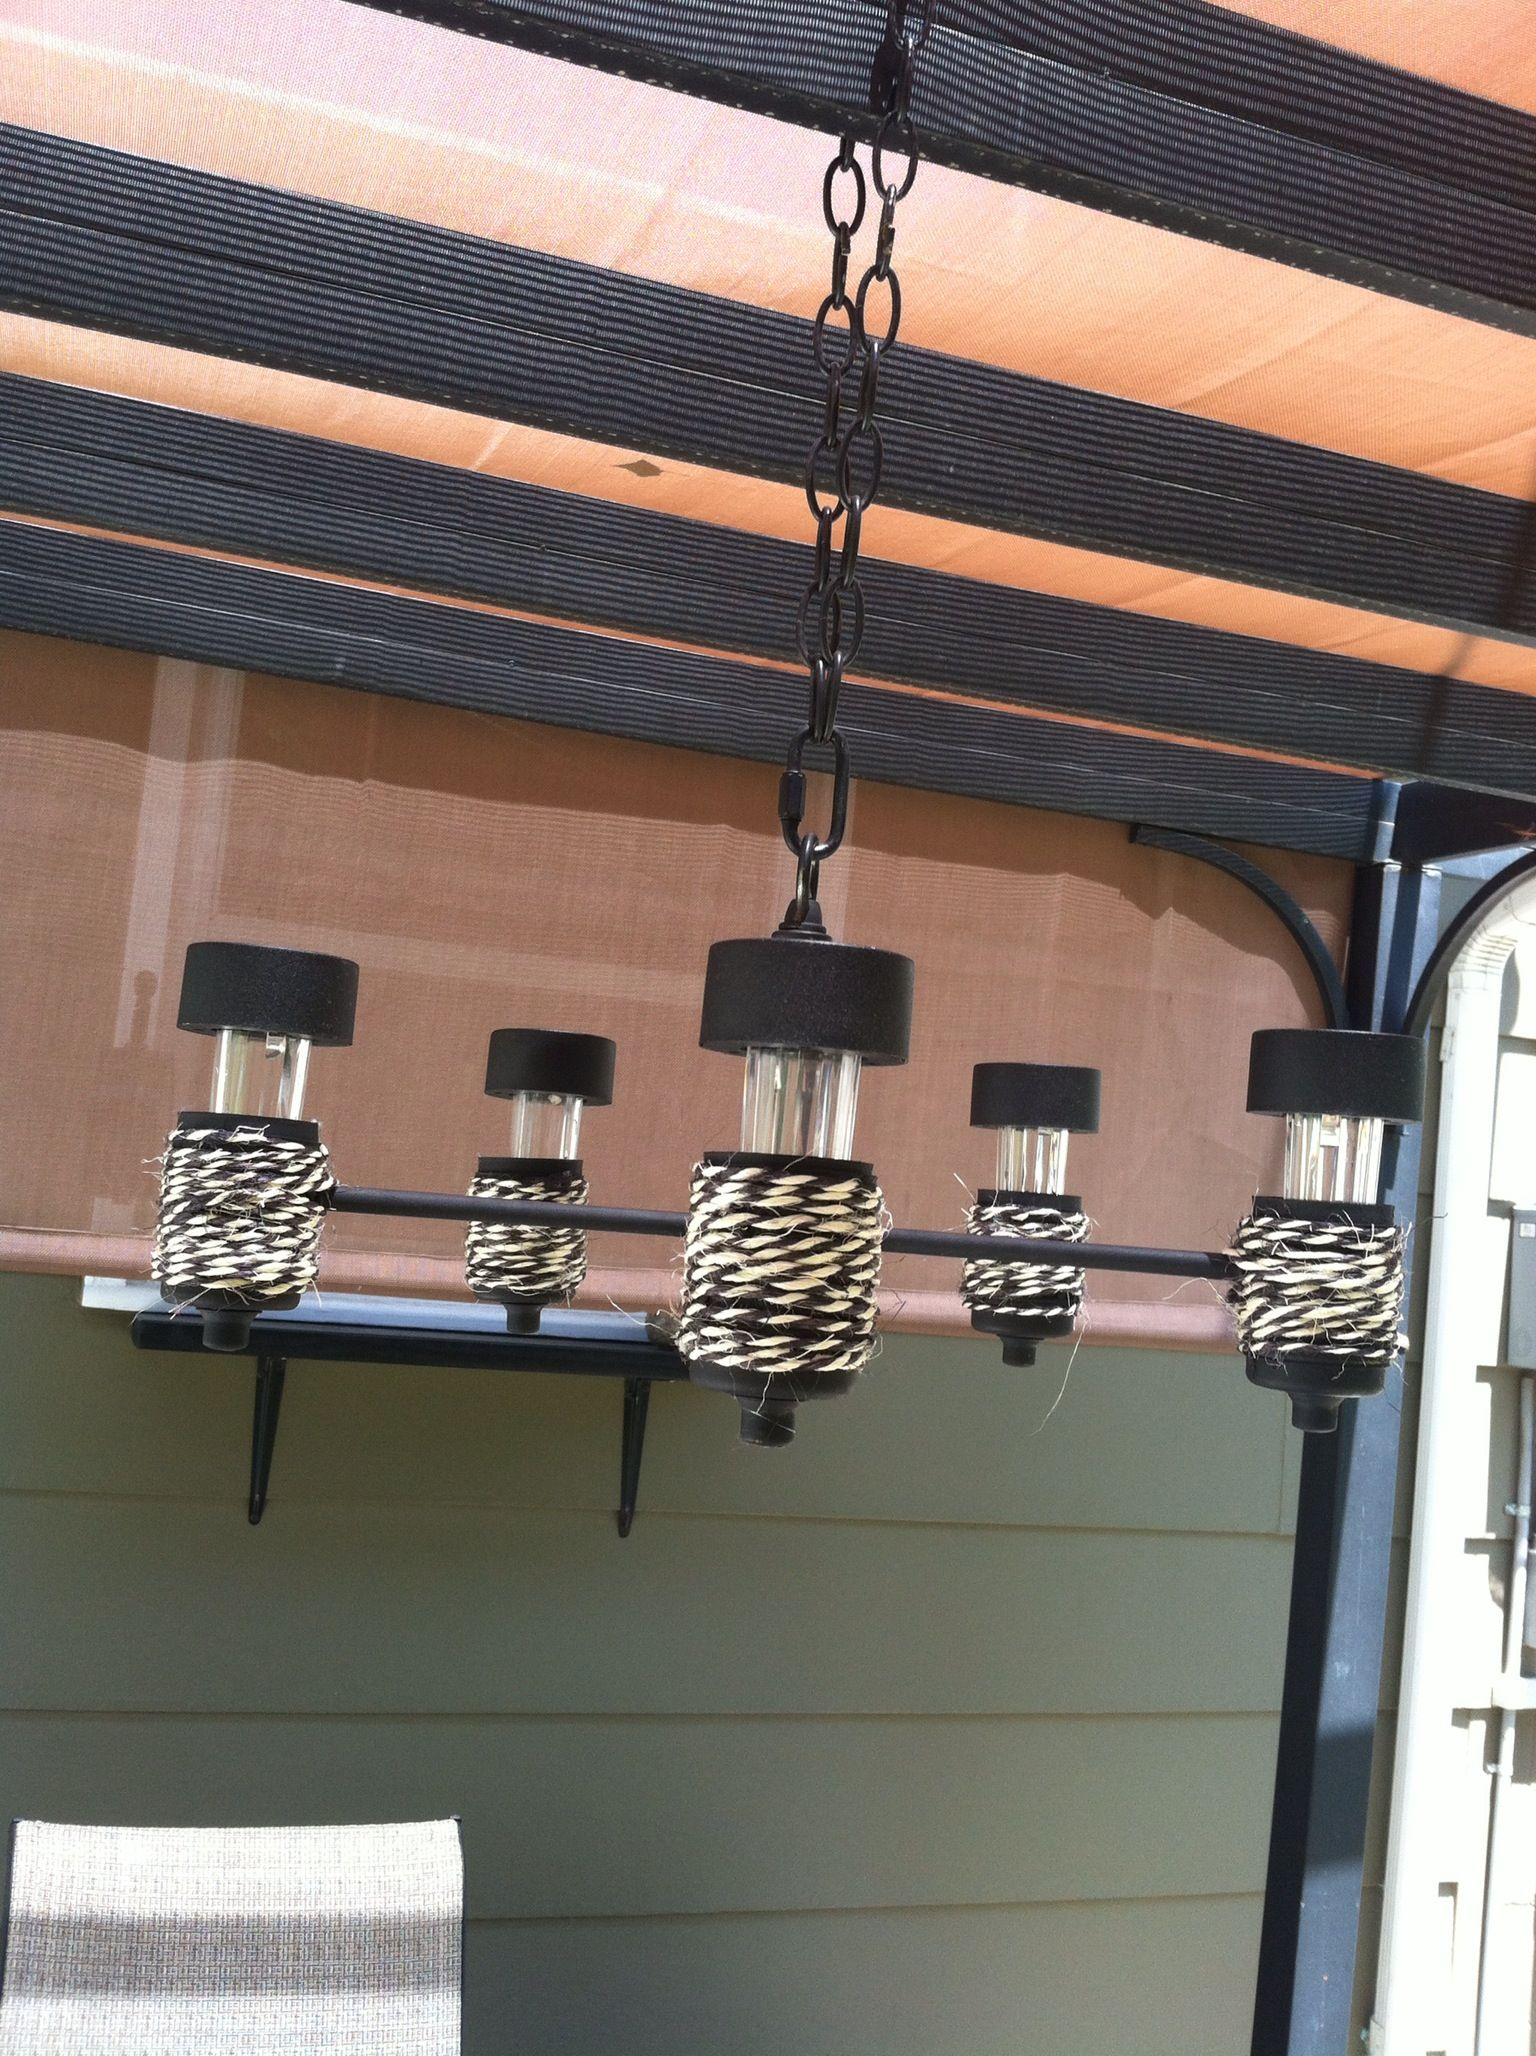 Upcycled old chandelier turned solar light chandelier hanging from old chandelier turned solar light chandelier hanging from my pergola arubaitofo Choice Image